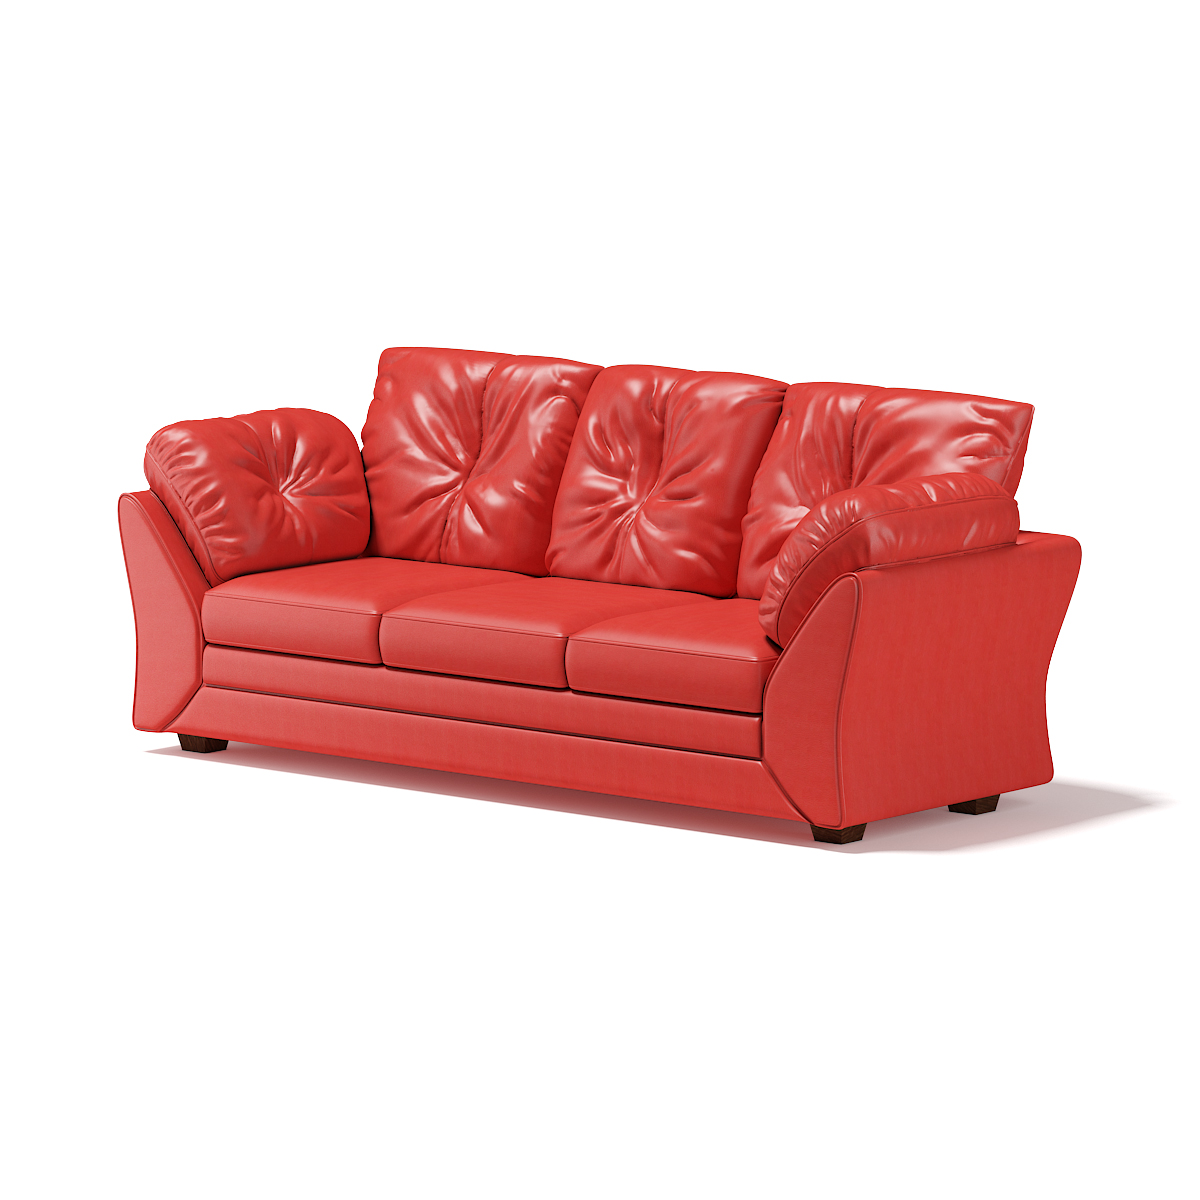 Red Leather Sofa Cgaxis Models